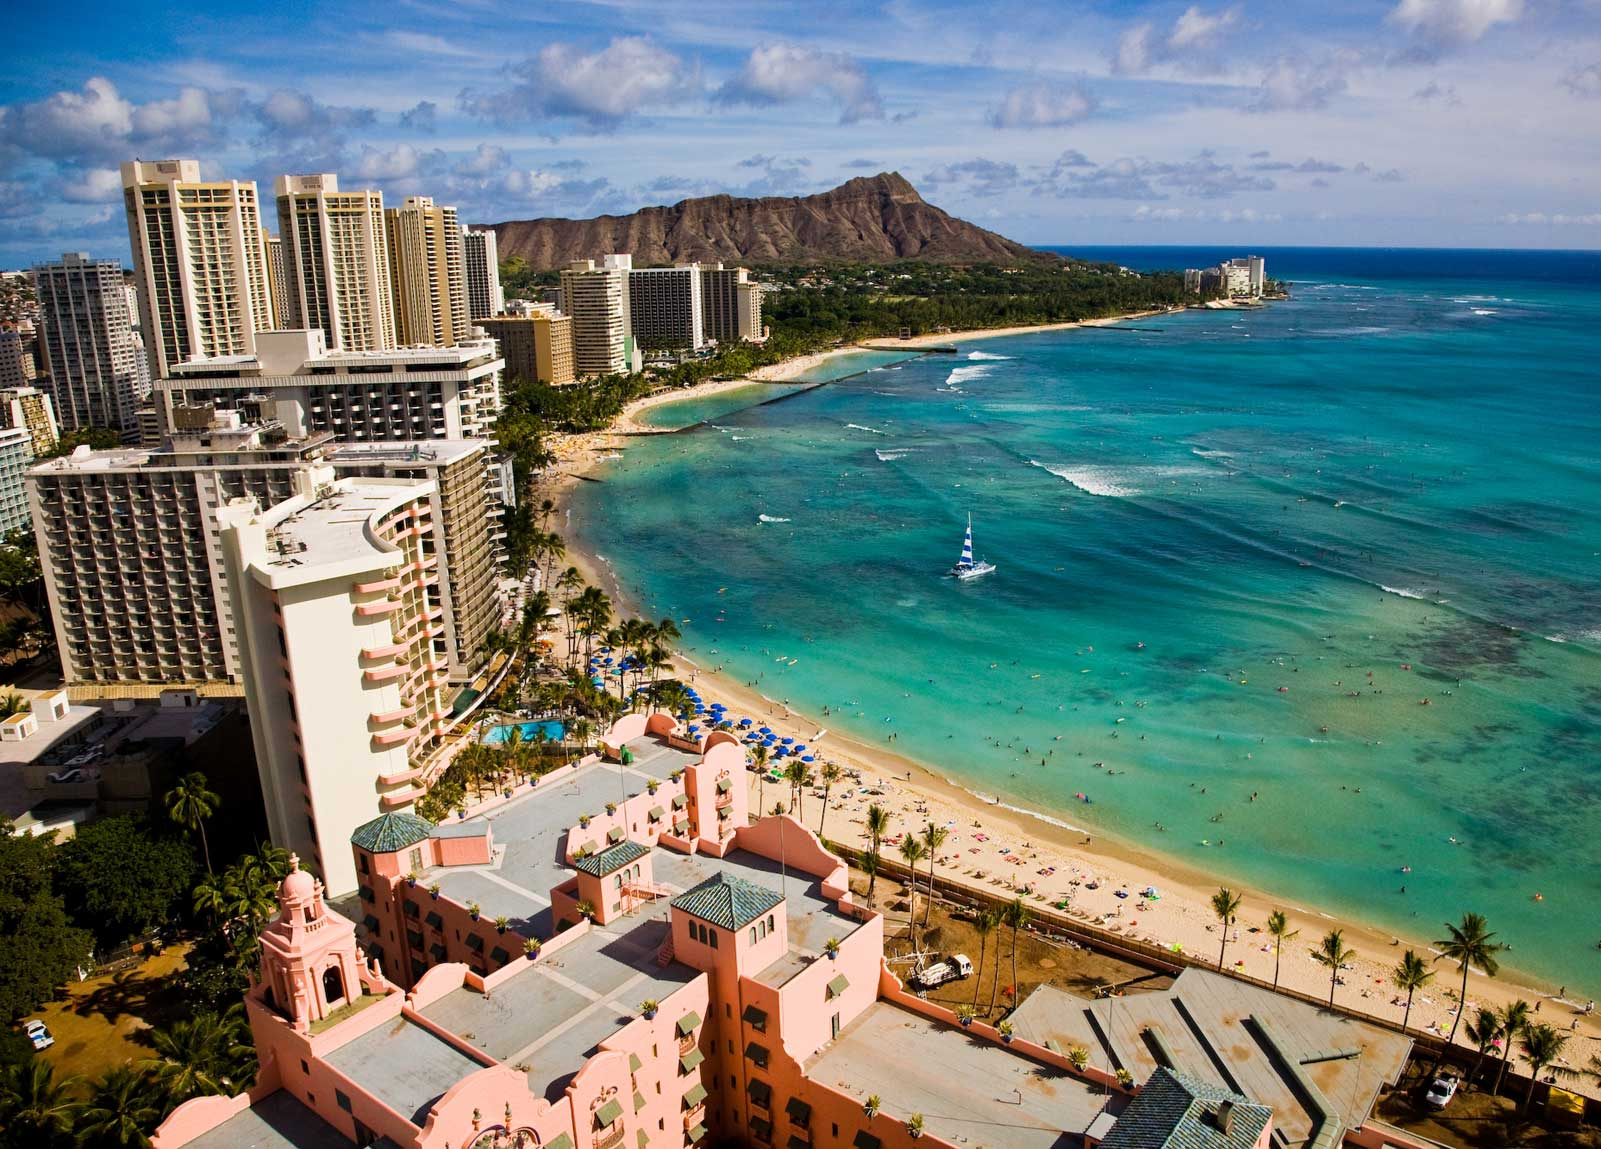 http://www.destination360.com/north-america/us/hawaii/oahu/images/s/waikiki-beach.jpg